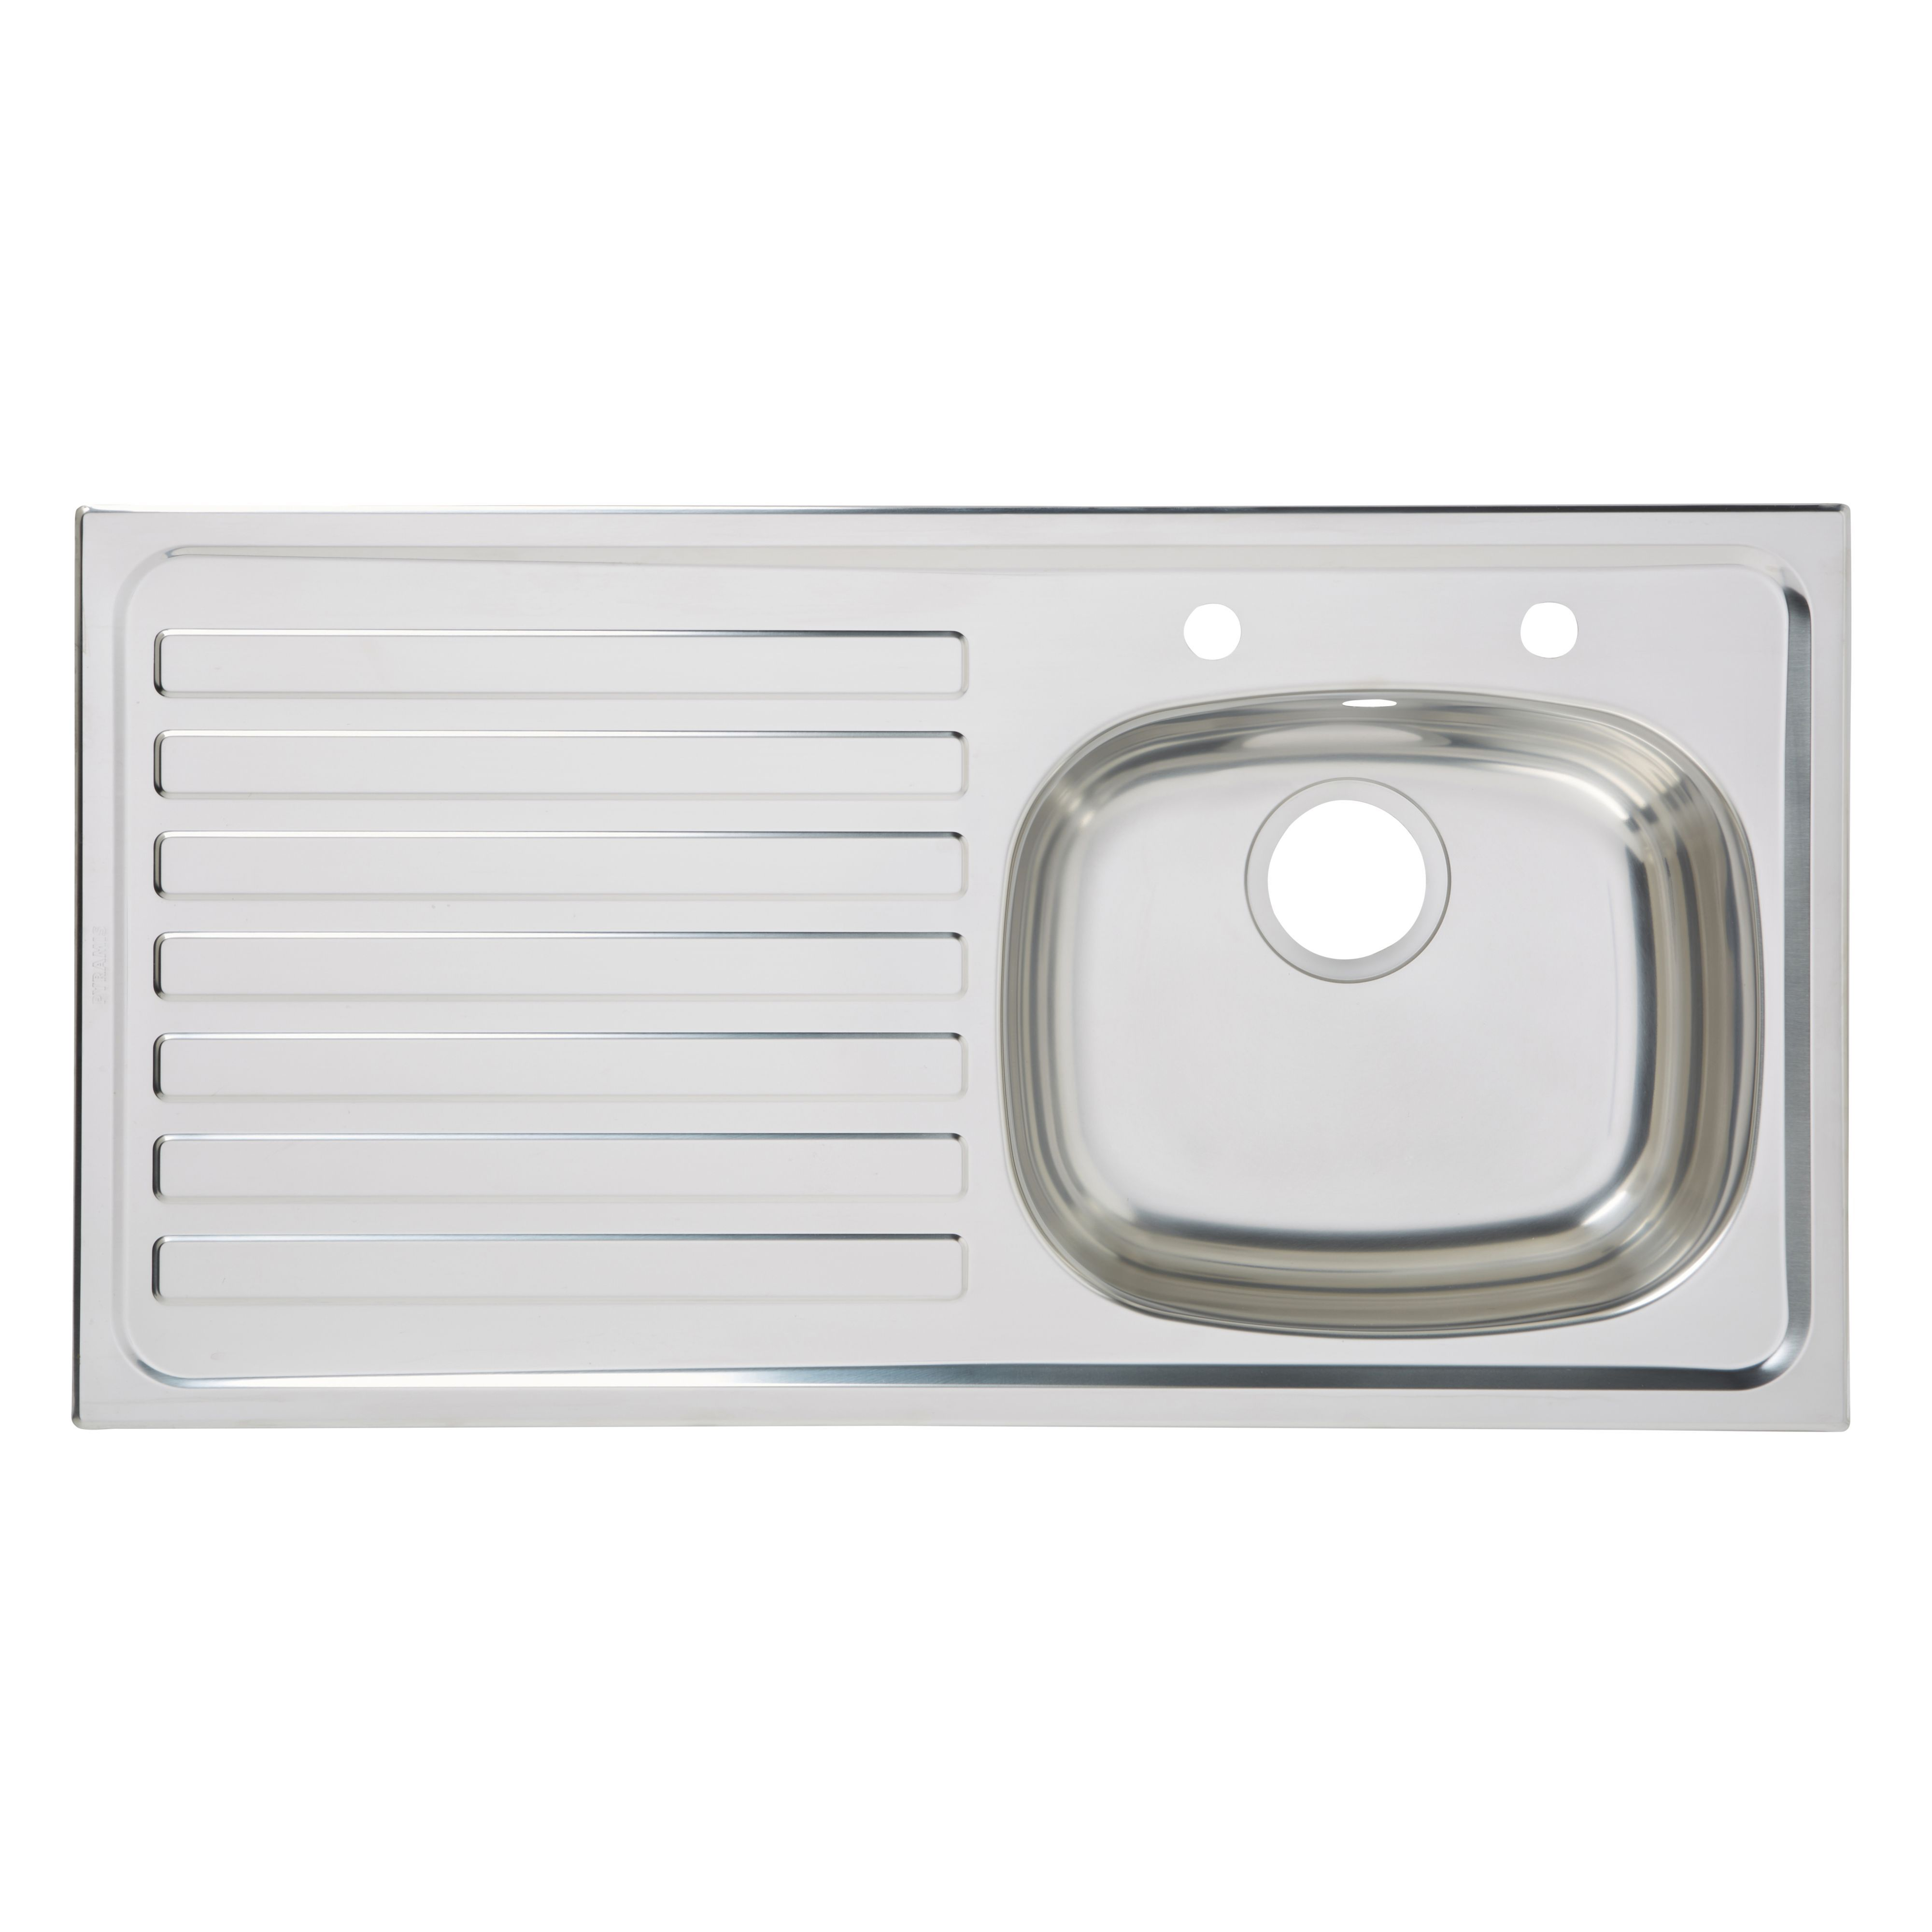 Utility 1 Bowl Polished Stainless Steel Sink & Lh Drainer